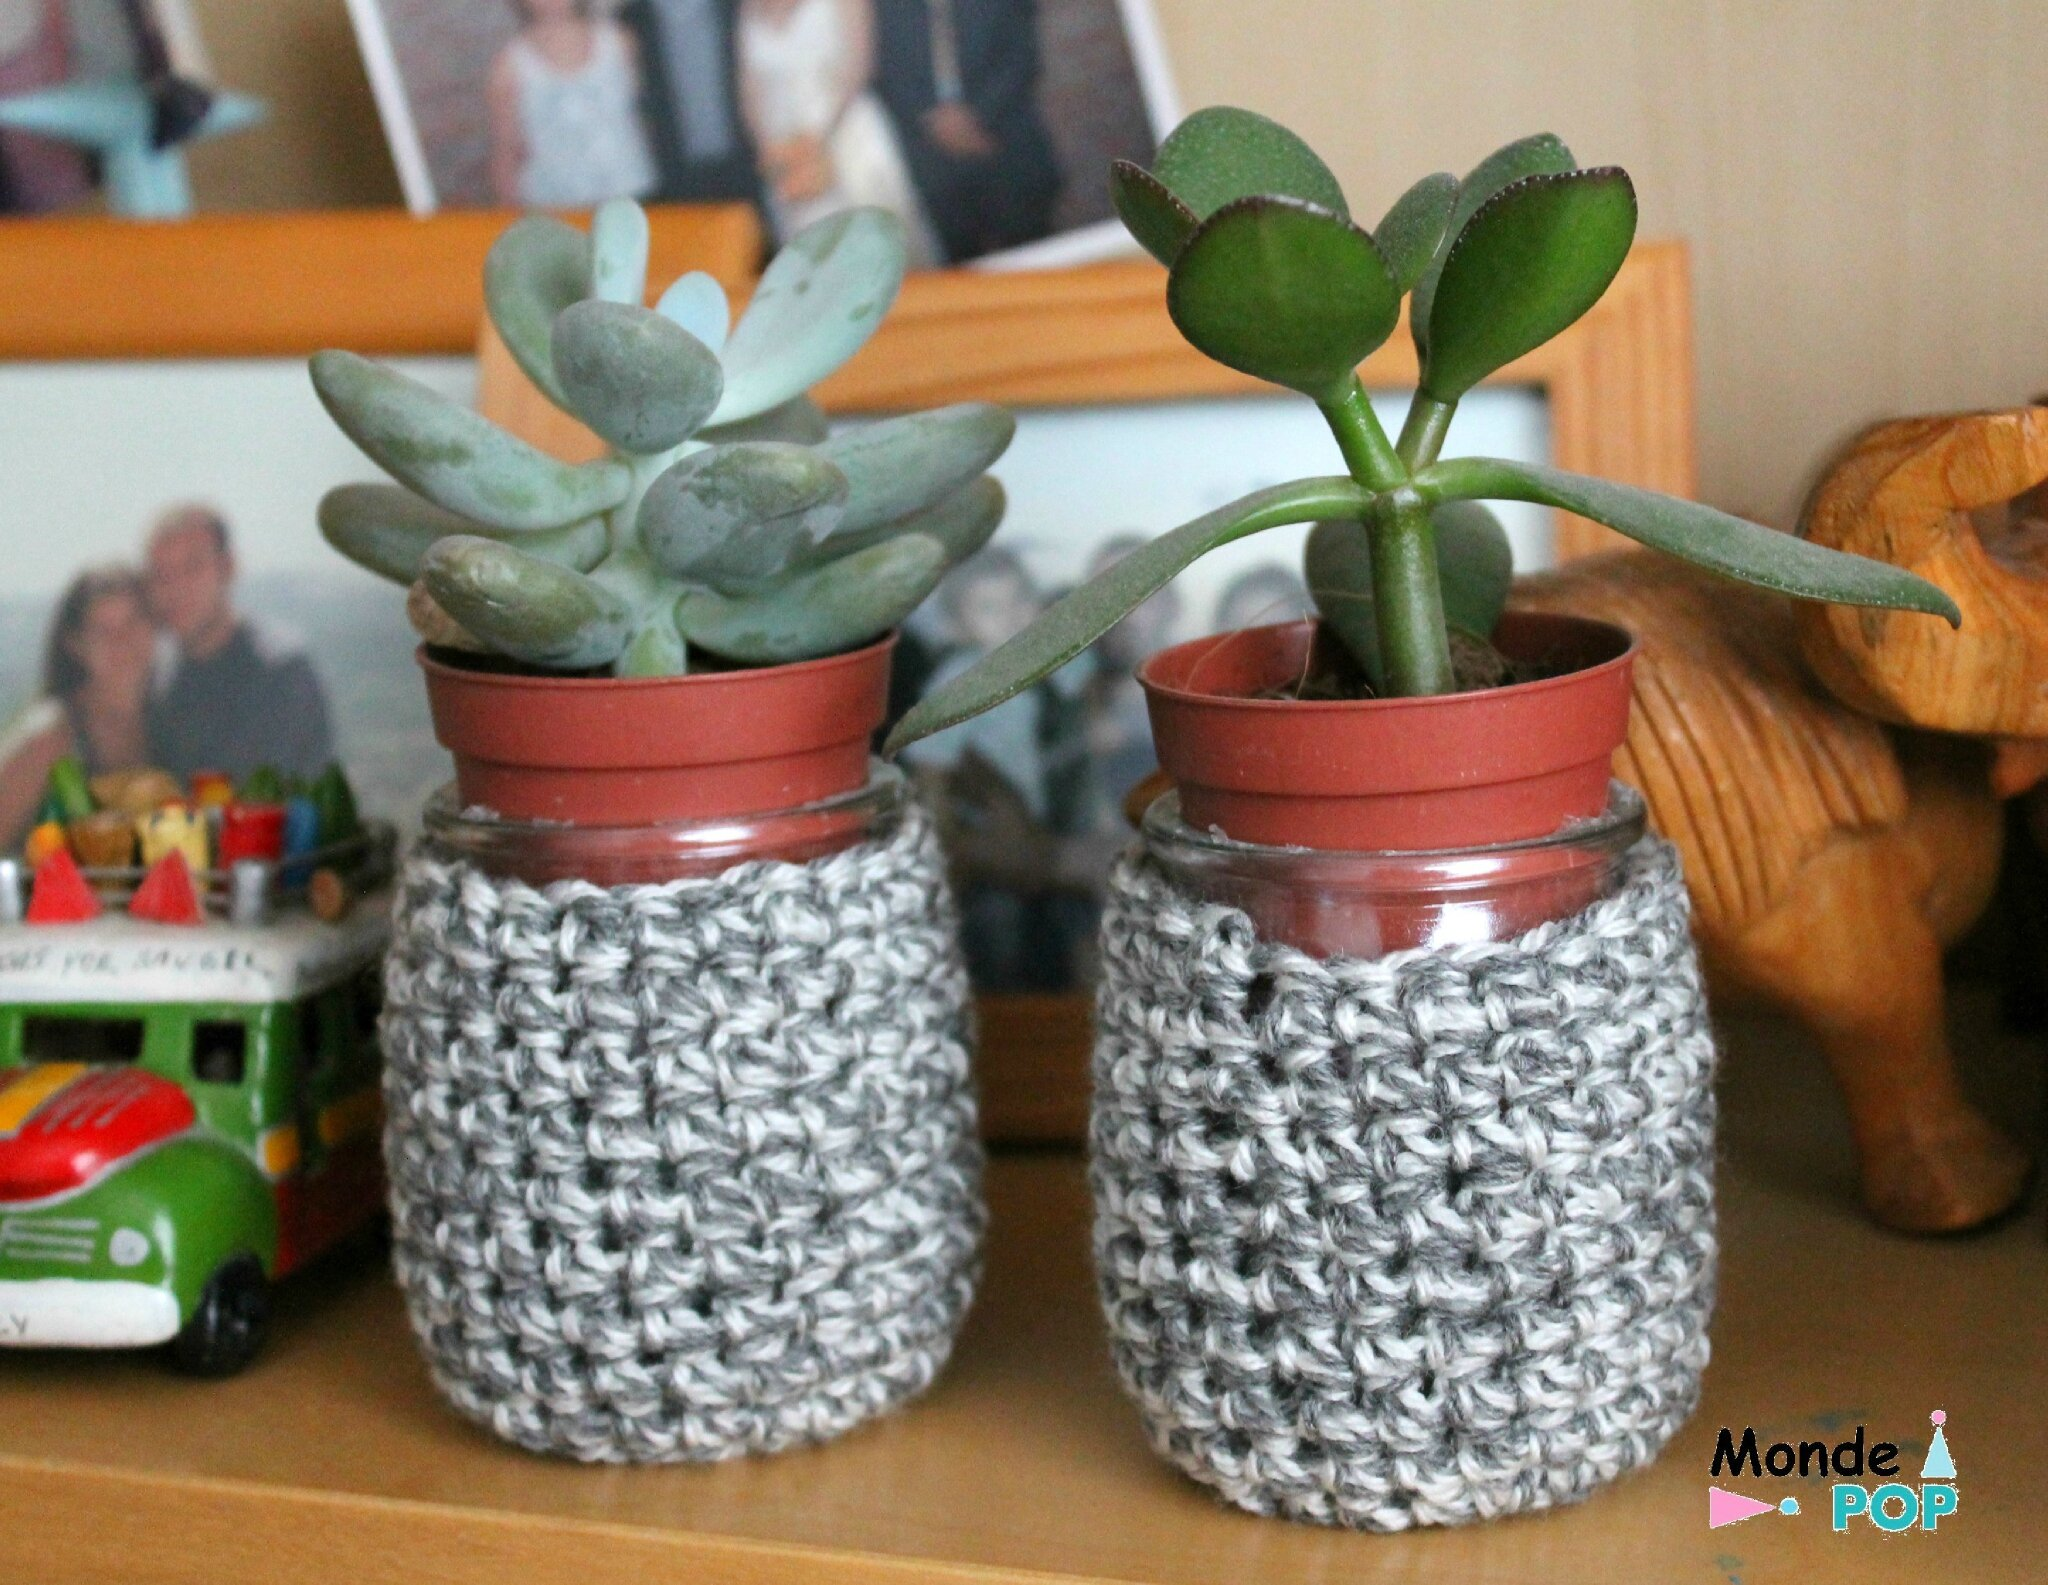 Plantes Increvables Les Succulentes Les Plantes Presque Increvables Monde Pop